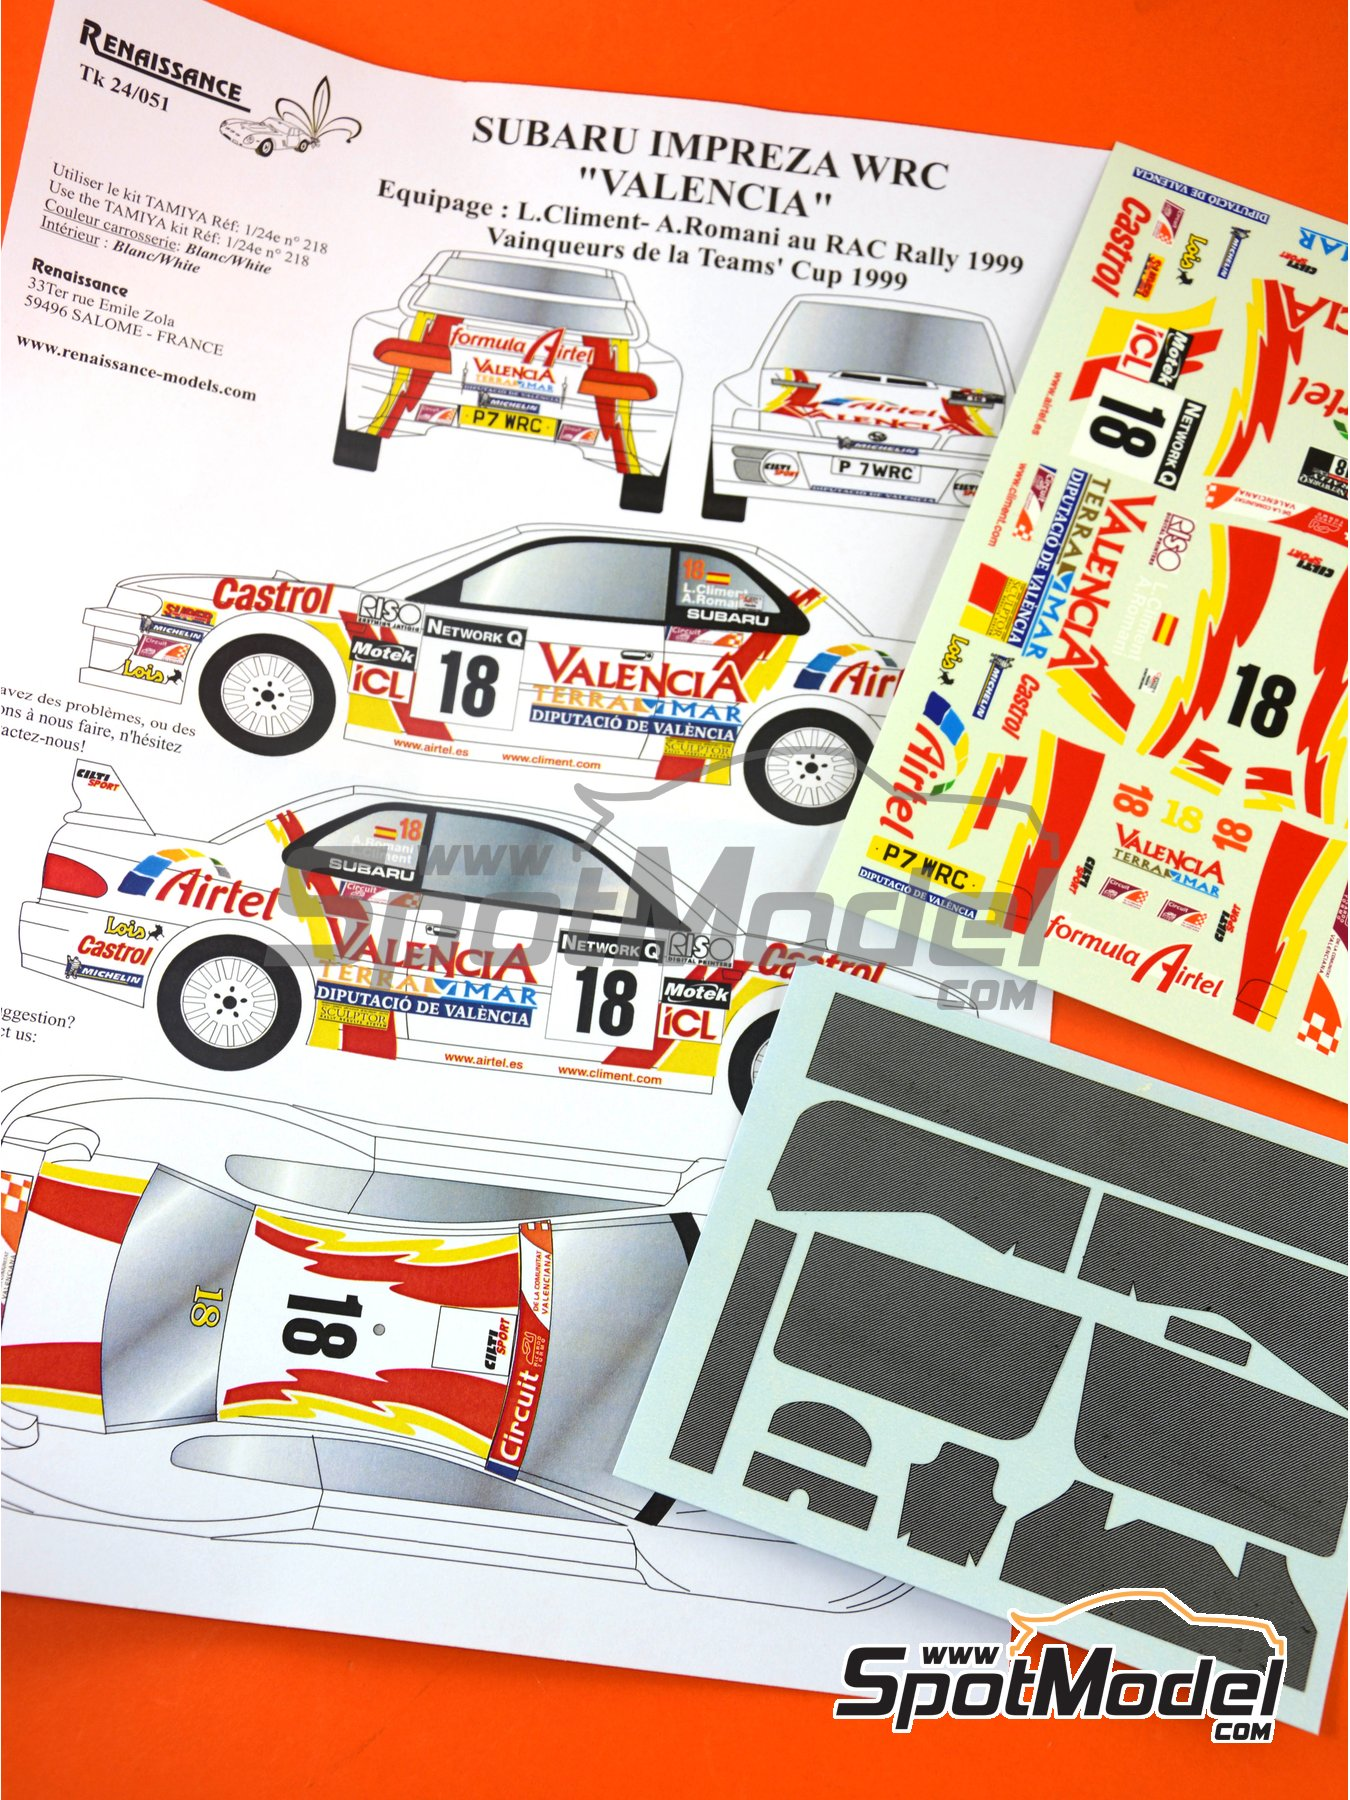 Subaru Impreza WRC - RAC Rally 1999 | Marking / livery in 1/24 scale manufactured by Renaissance Models (ref. TK24-051) image